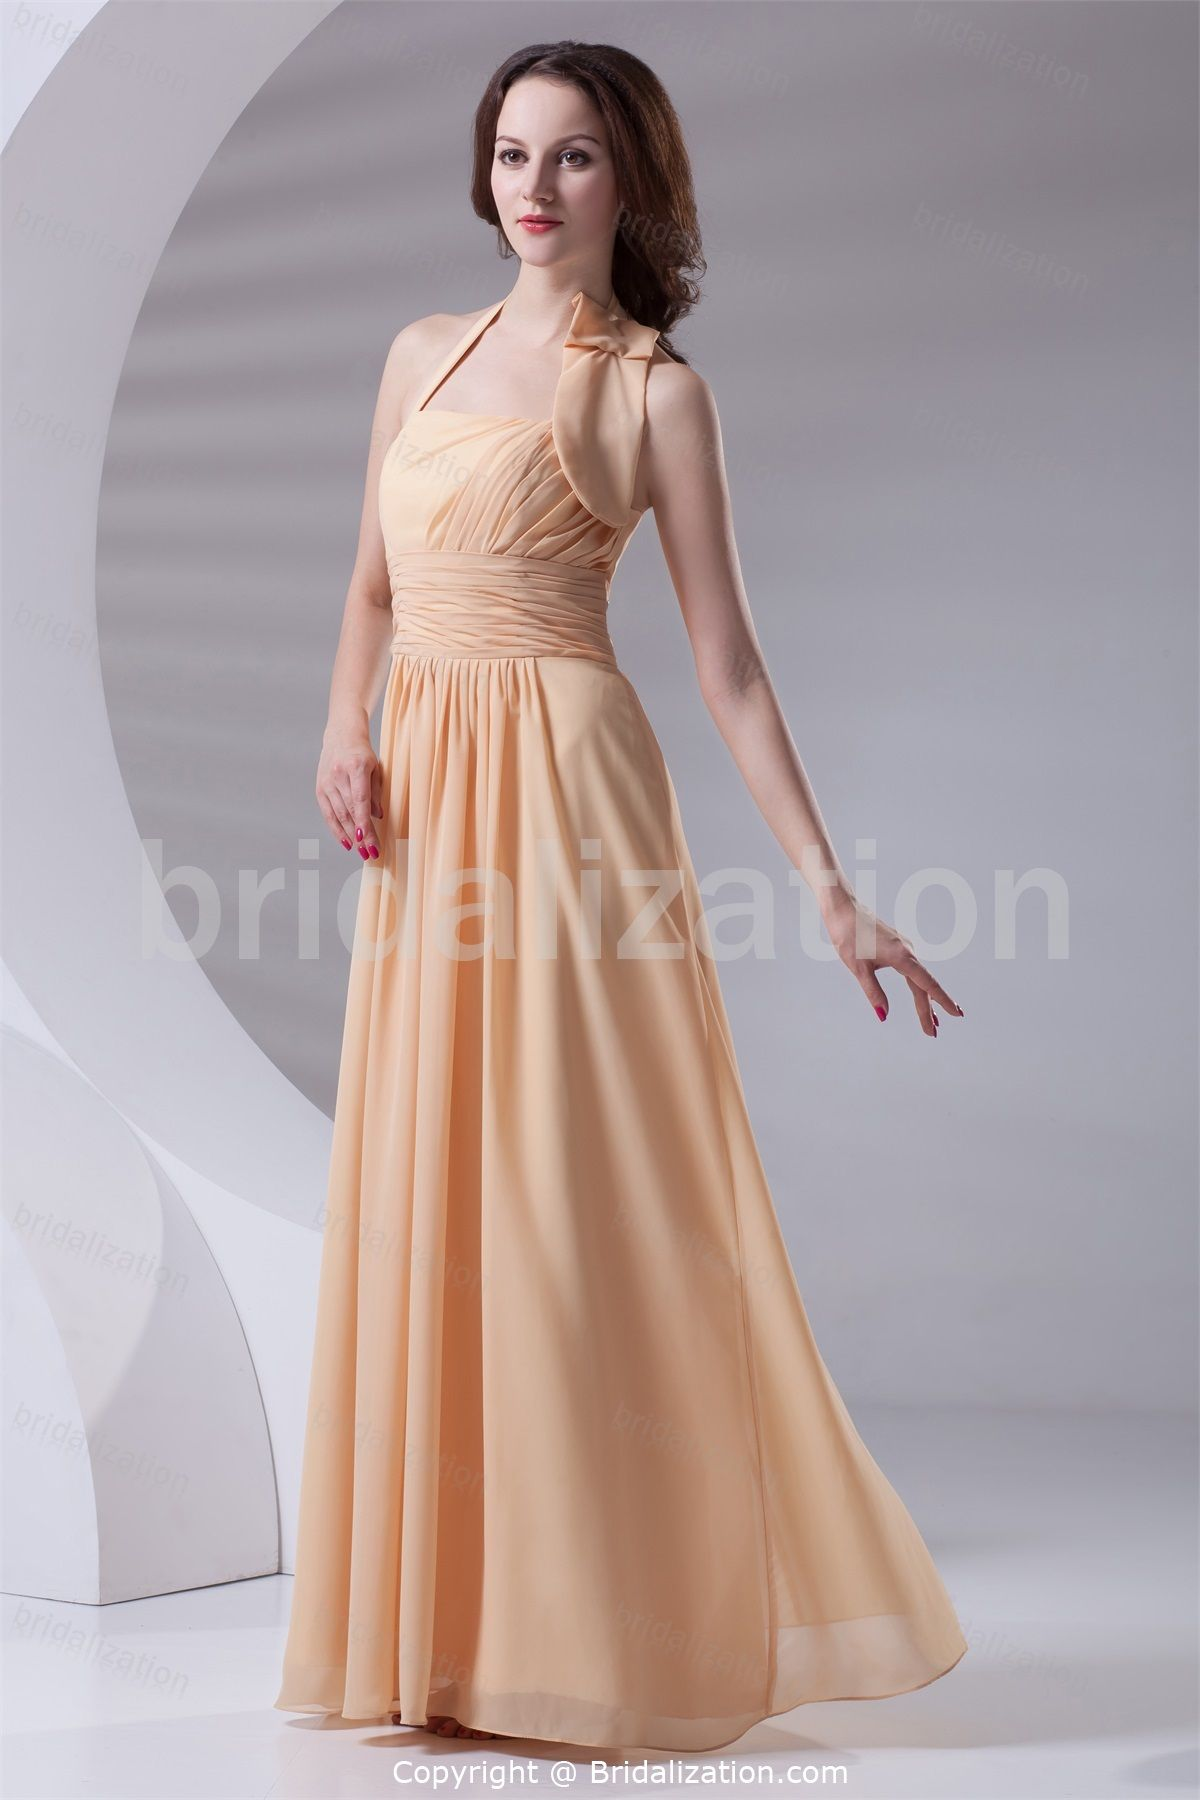 Champagne sleeveless spring hourglass floorlength bridesmaid dress